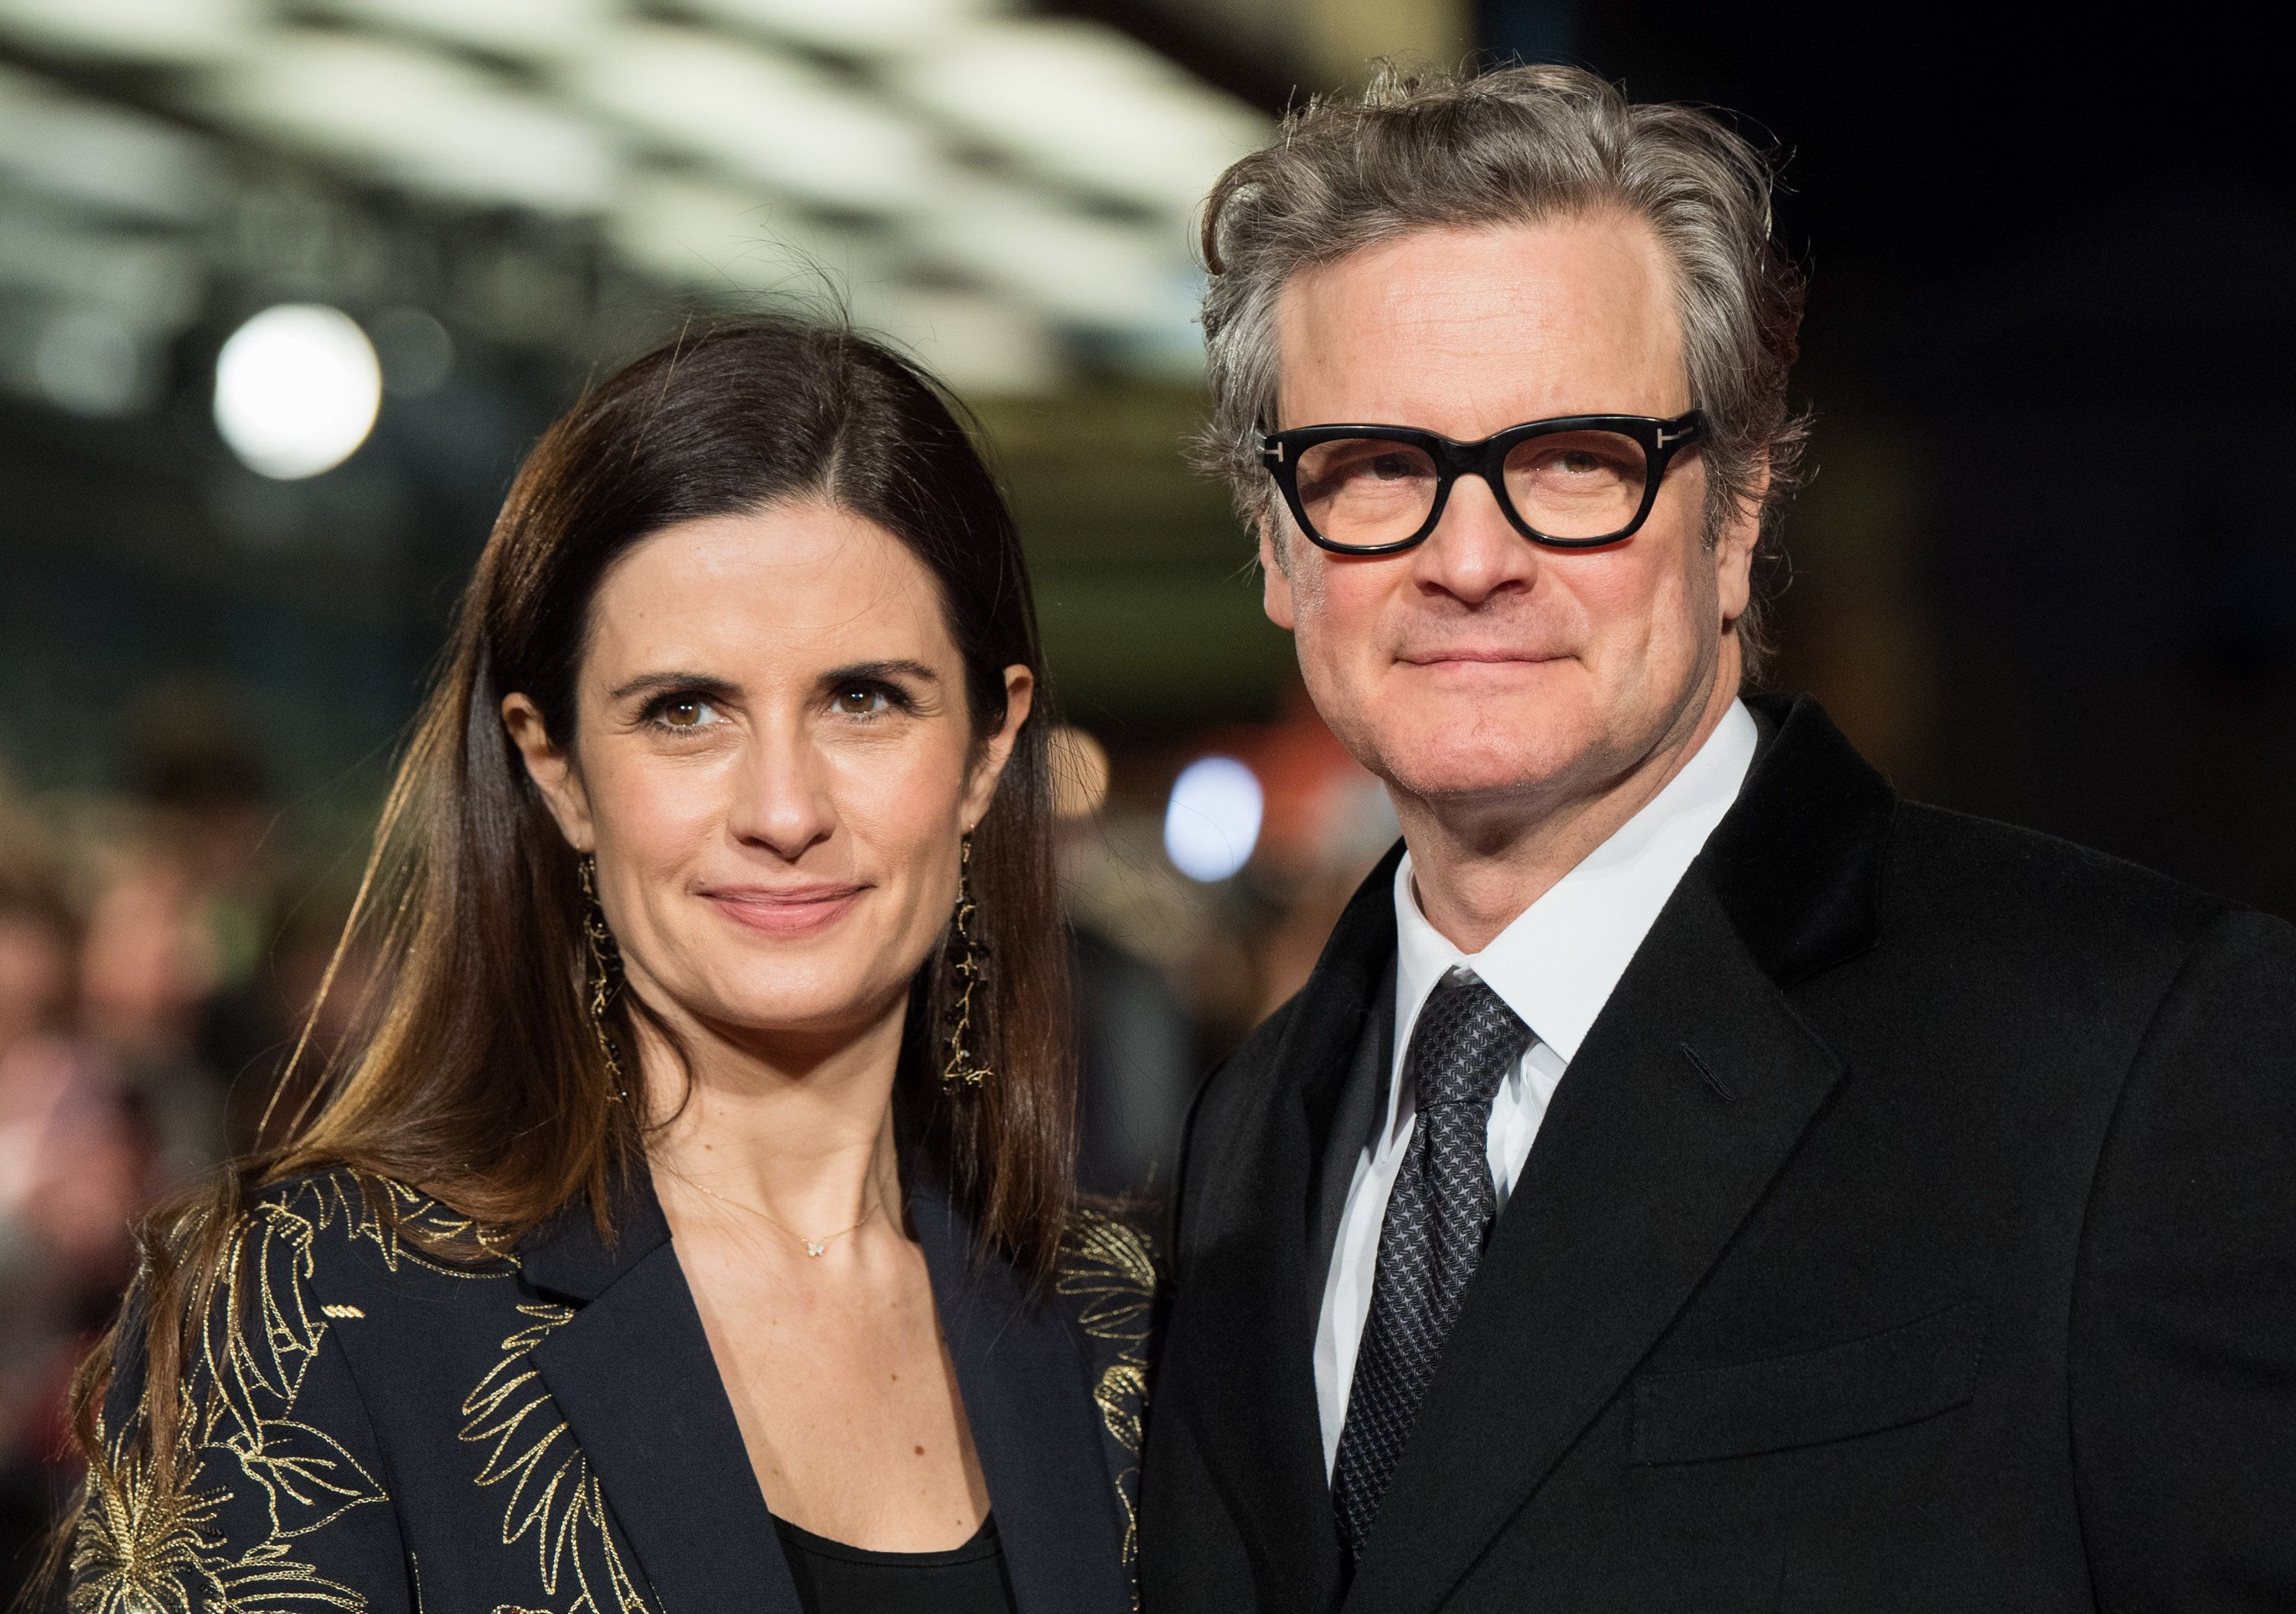 LONDON, ENGLAND - FEBRUARY 06:  Colin Firth and Livia Firth attend 'The Mercy' World Premiere at The Curzon Mayfair on February 6, 2018 in London, England.  (Photo by Samir Hussein/Samir Hussein/WireImage)